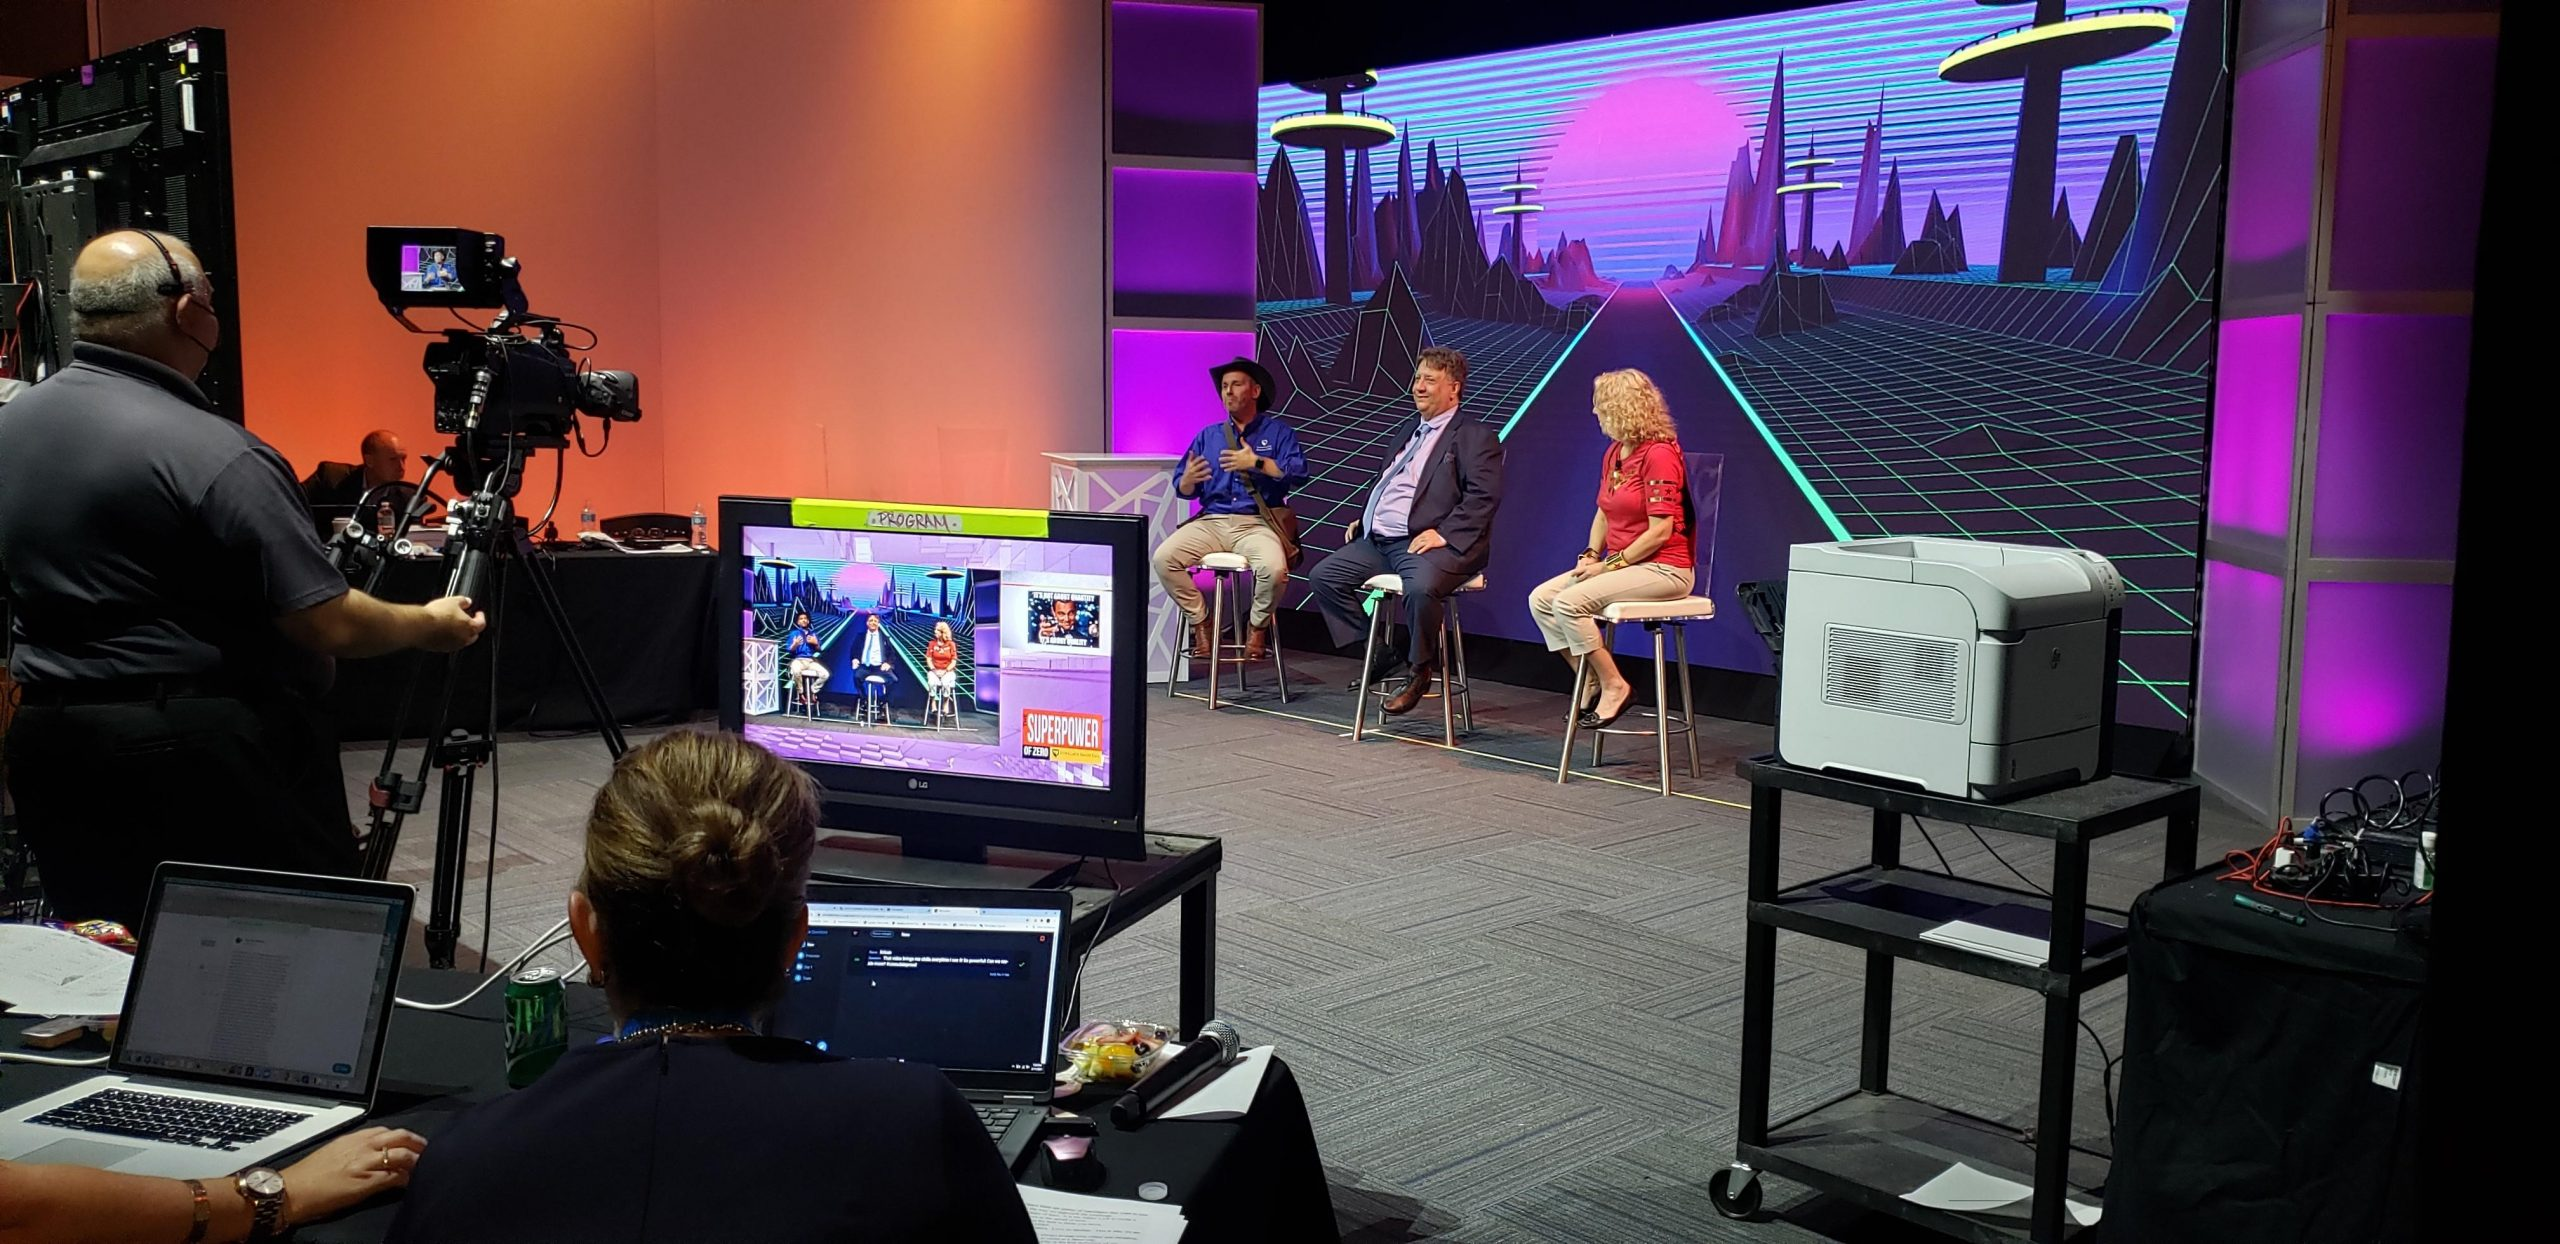 Panelists are filmed in front of a branded stage, while technical team are vision mixing the content into the virtual event